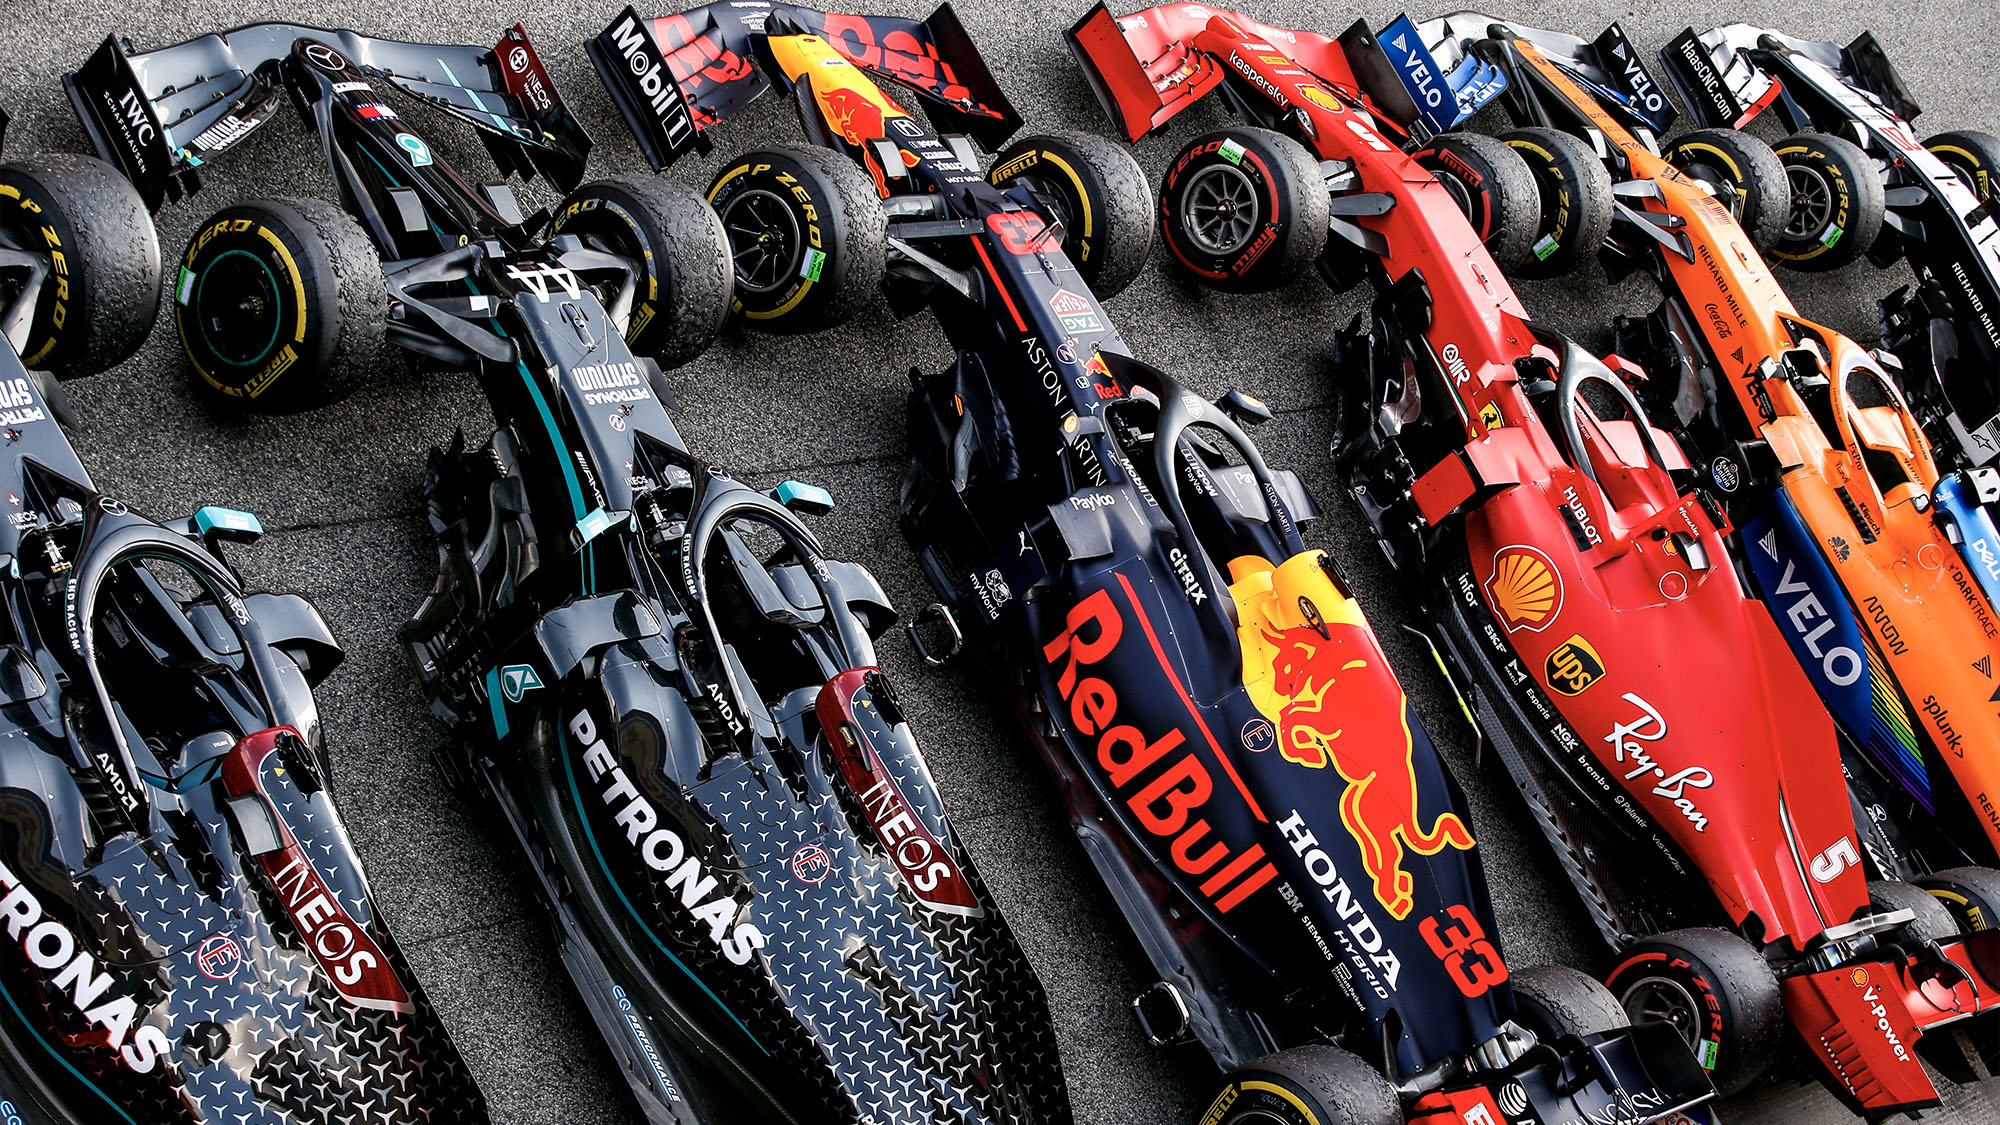 McLaren Ferrari red Bull and Mercedes cars lined up in parc ferme after the 2020 F1 Spanish Grand Prix